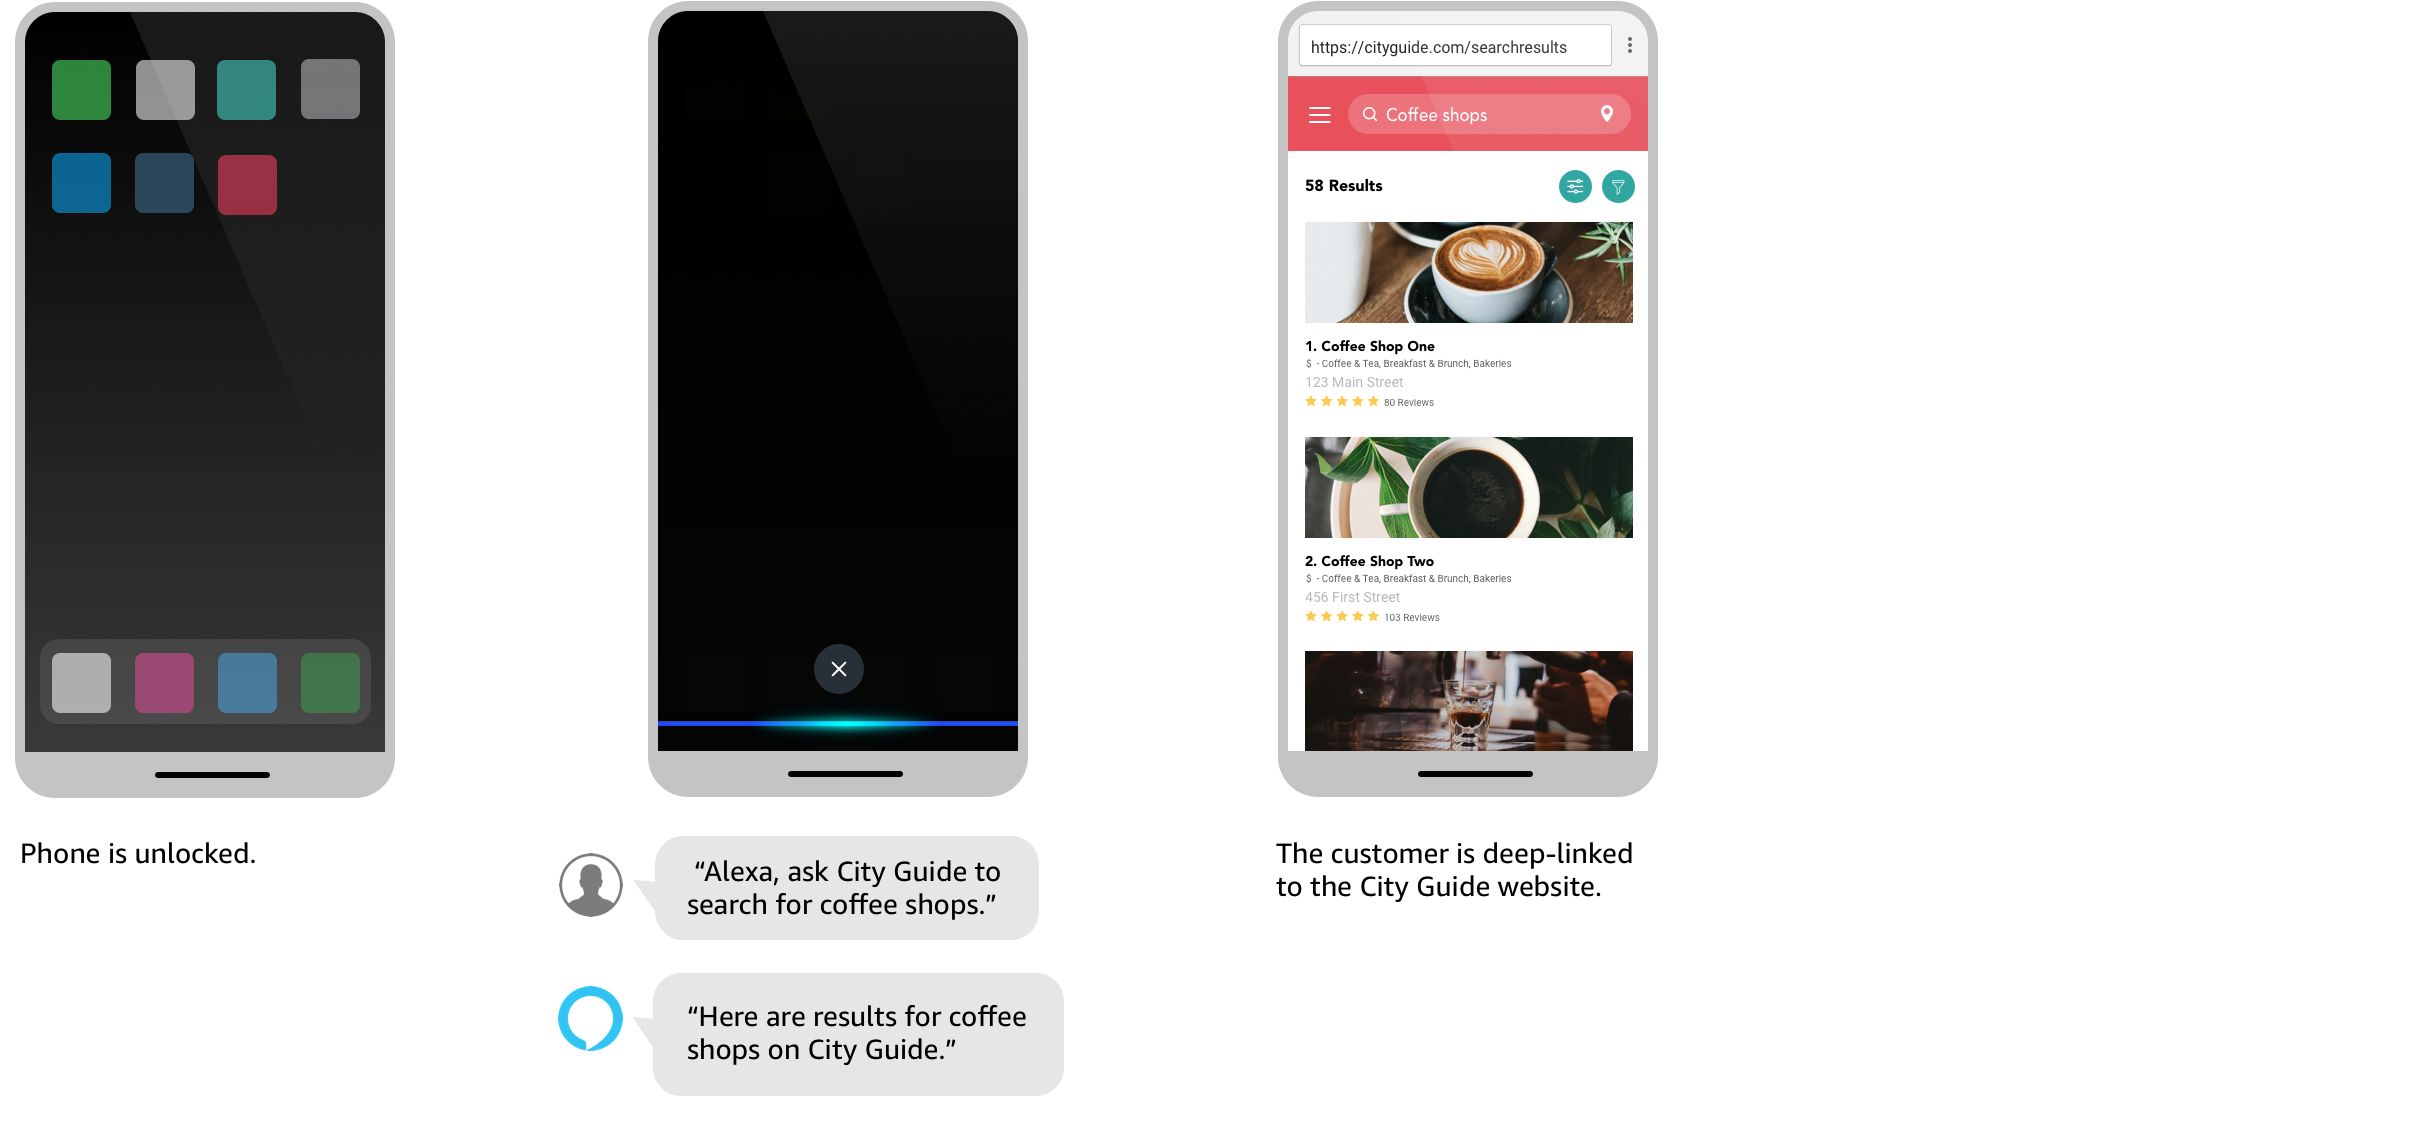 Image of how new customers experience deep-linking to an app or website. Customer asks Alexa to ask City Guide to search for coffee shops. Alexa responds with Here are the results for coffee shops on City Guide. The customer is deep-linked to the City Guide website.